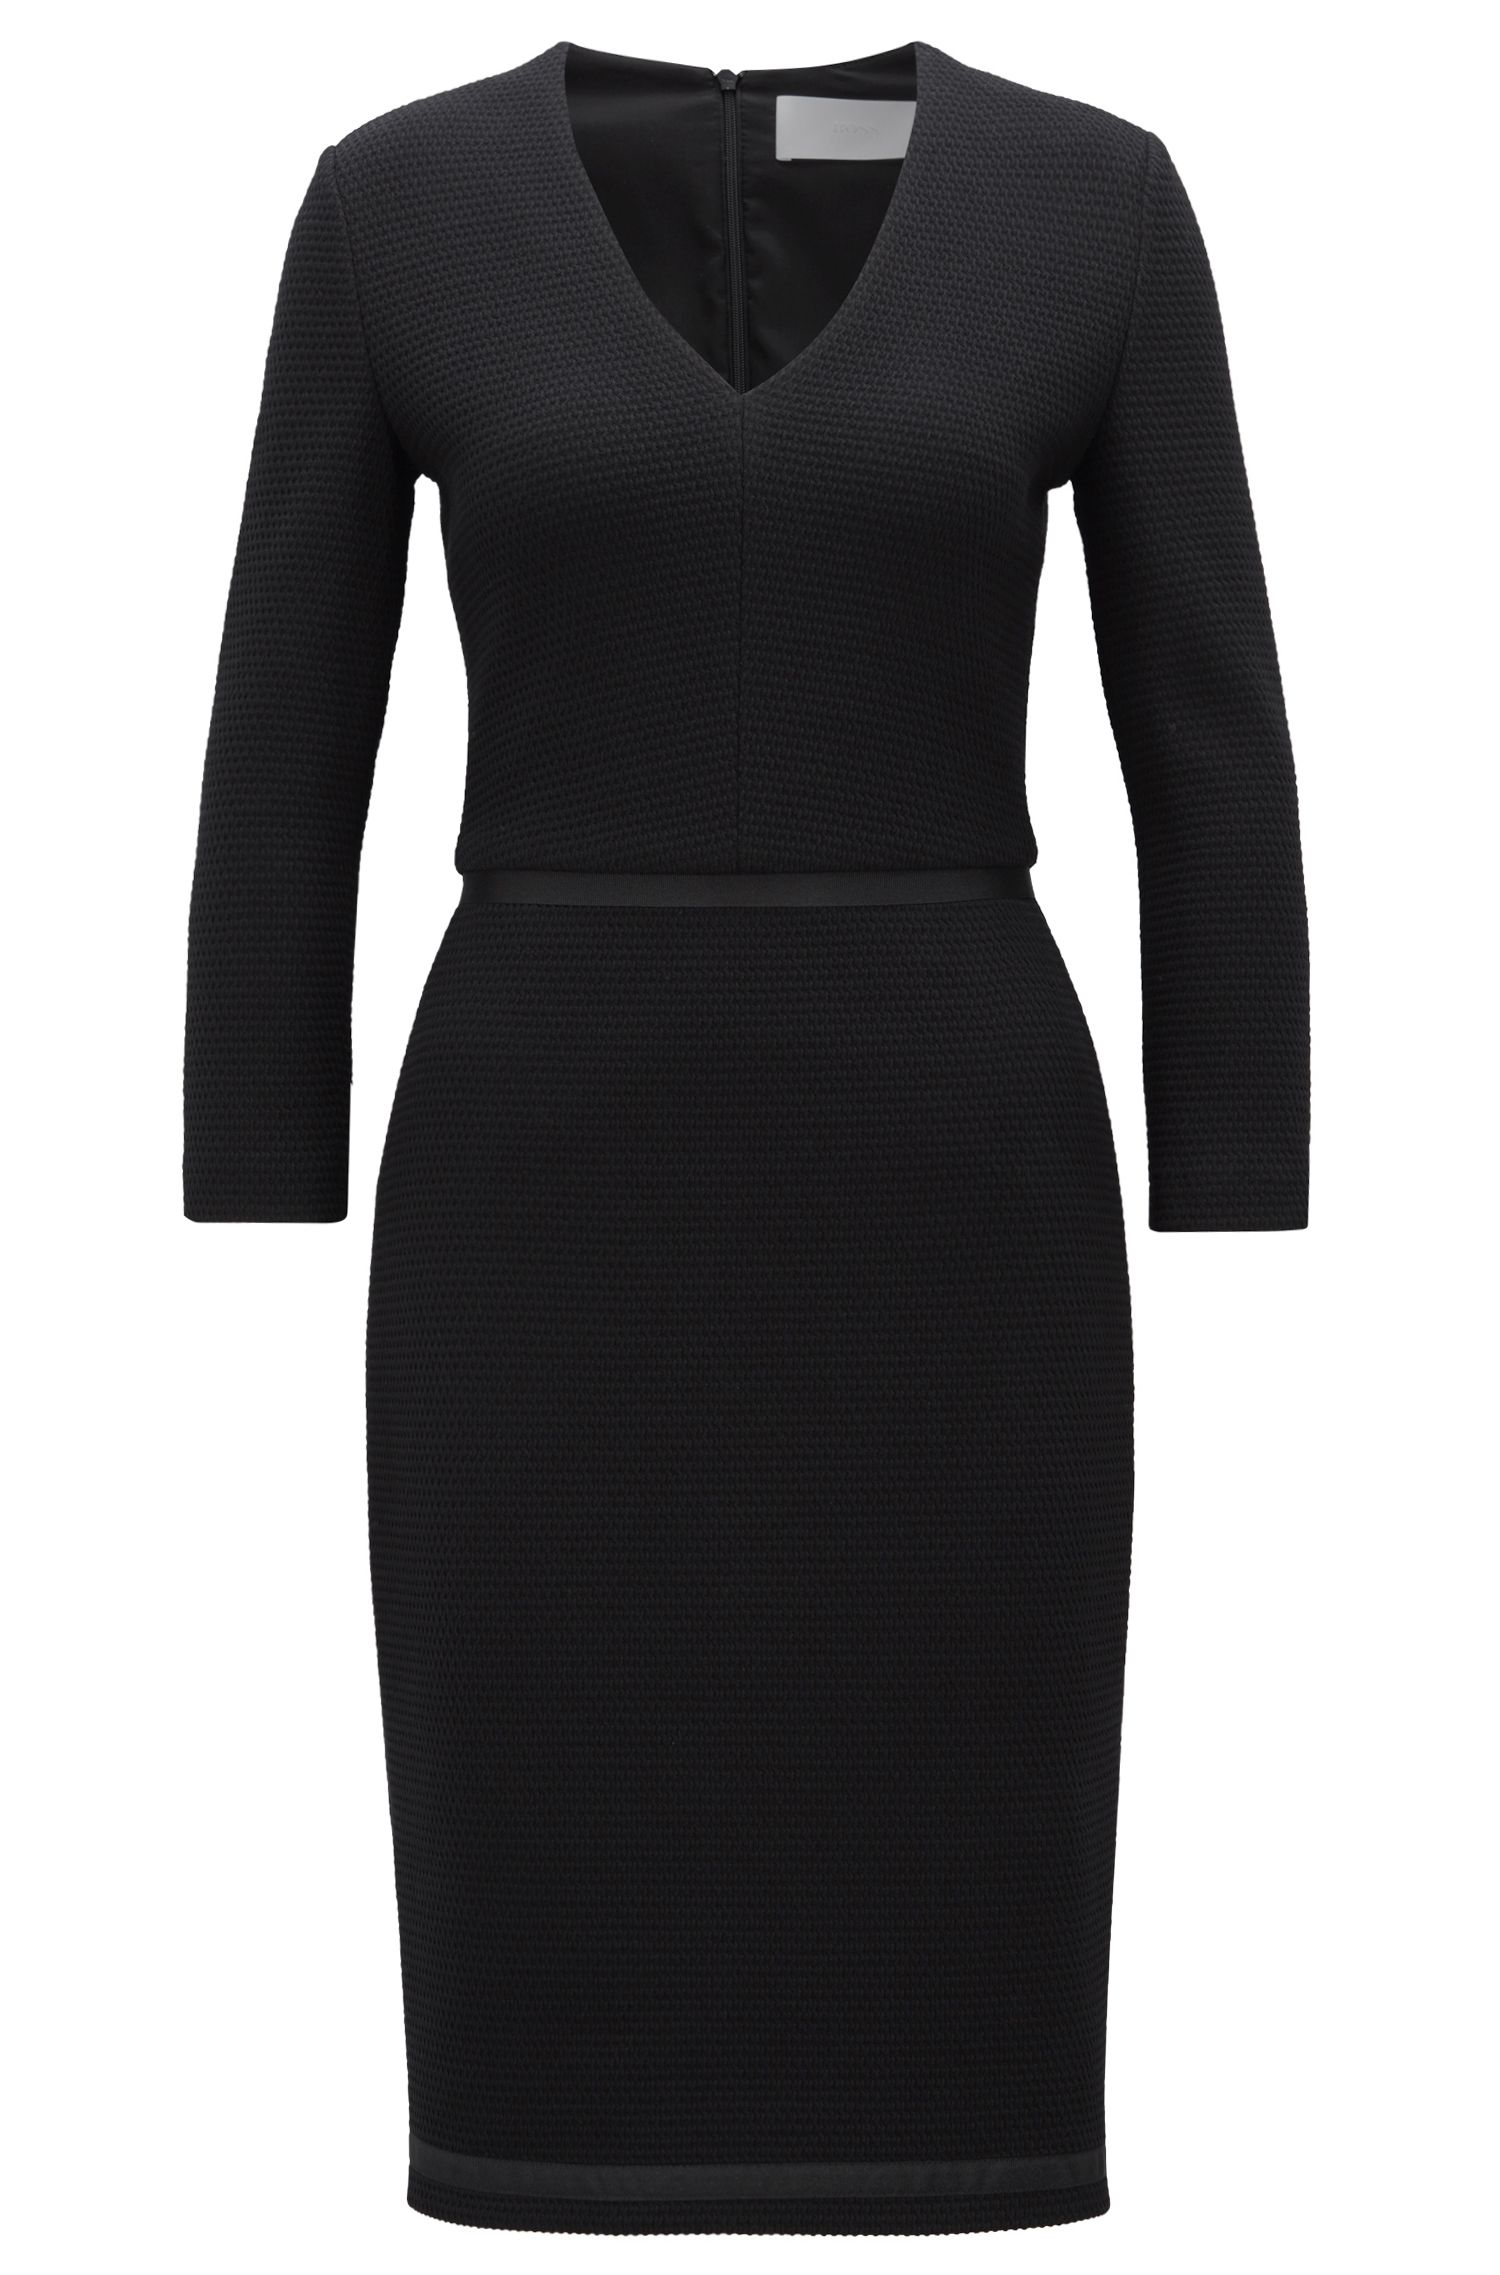 V-neck shift dress in structured jersey with ribbon detailing, Black